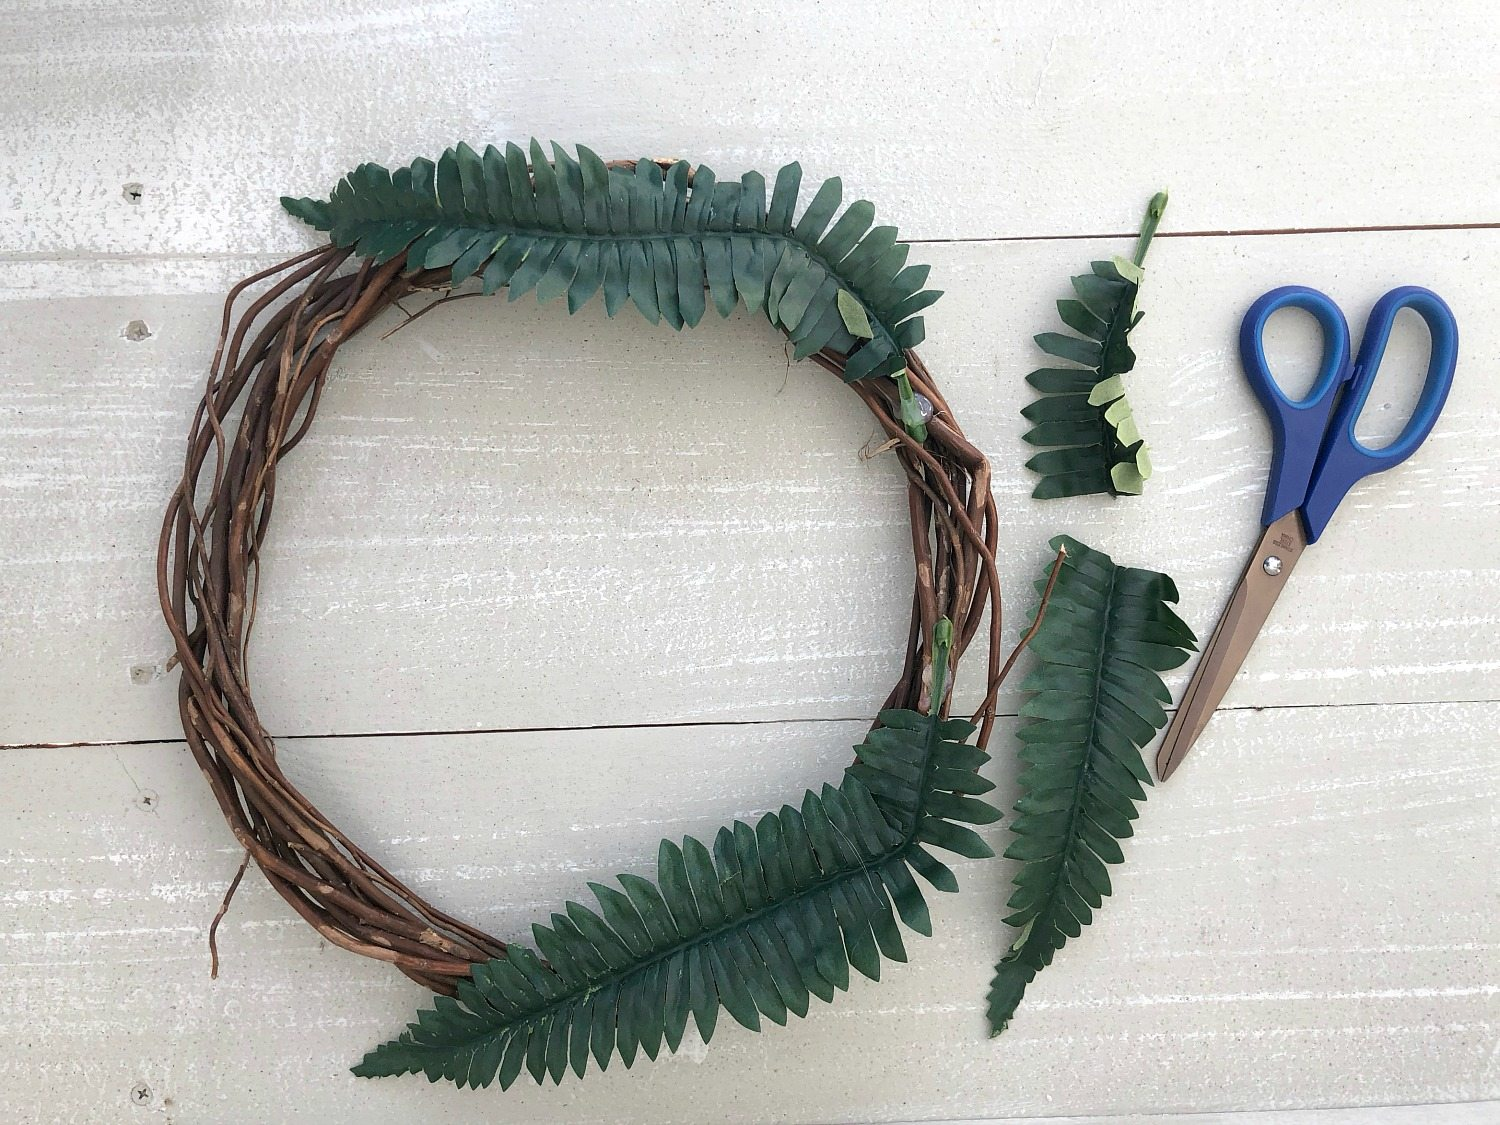 Glue and trim fern fronds